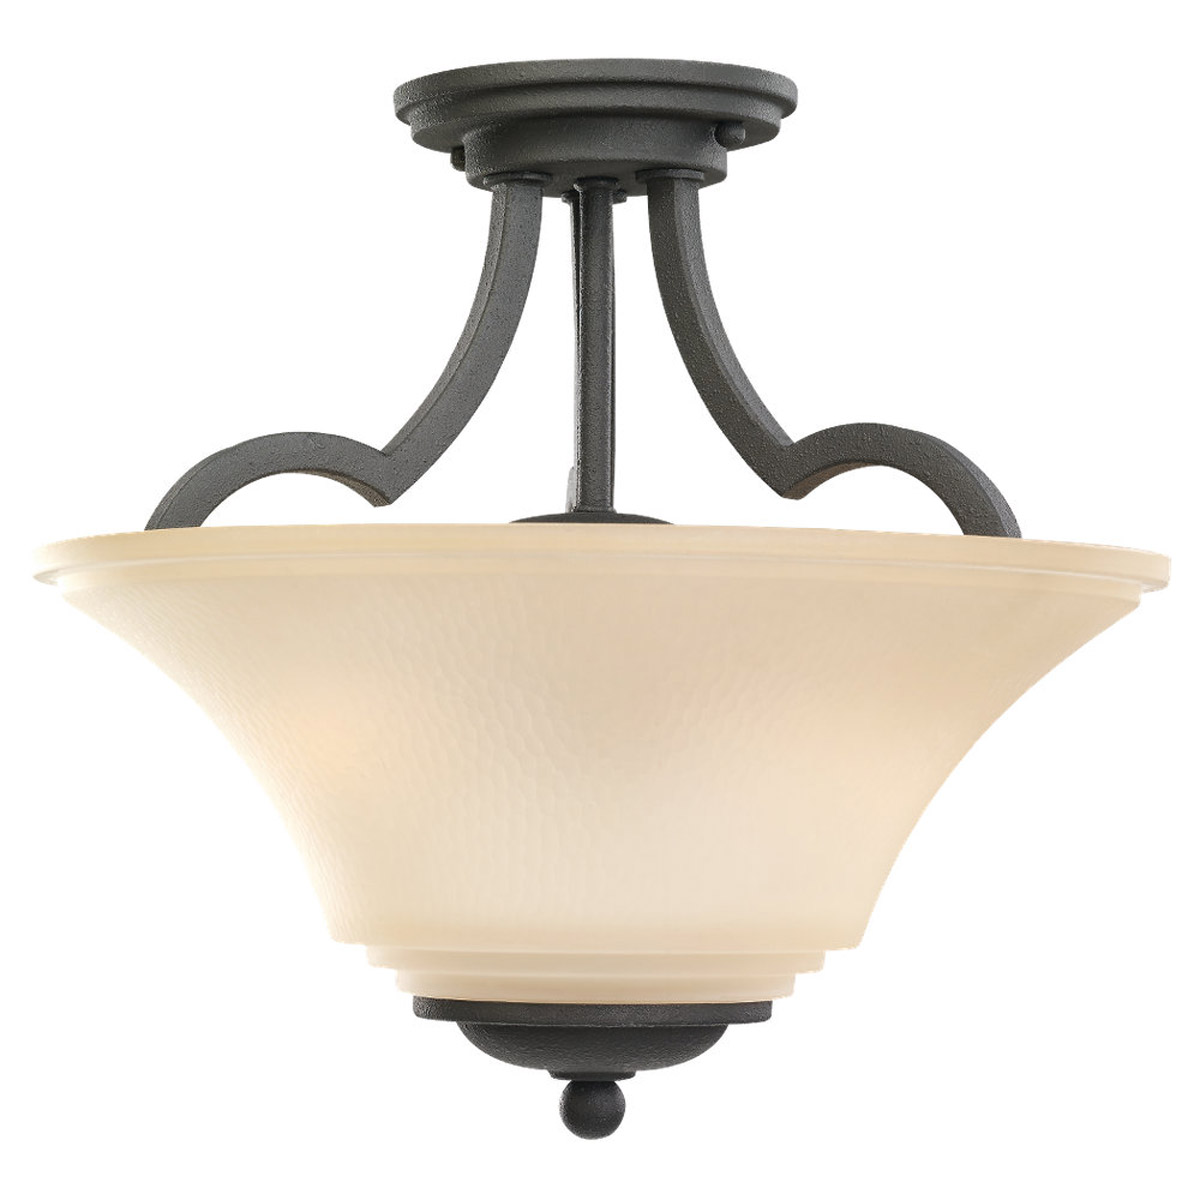 Sea Gull Somerton 2 Light Semi-Flush Convertible Pendant in Blacksmith 77375BLE-839 photo